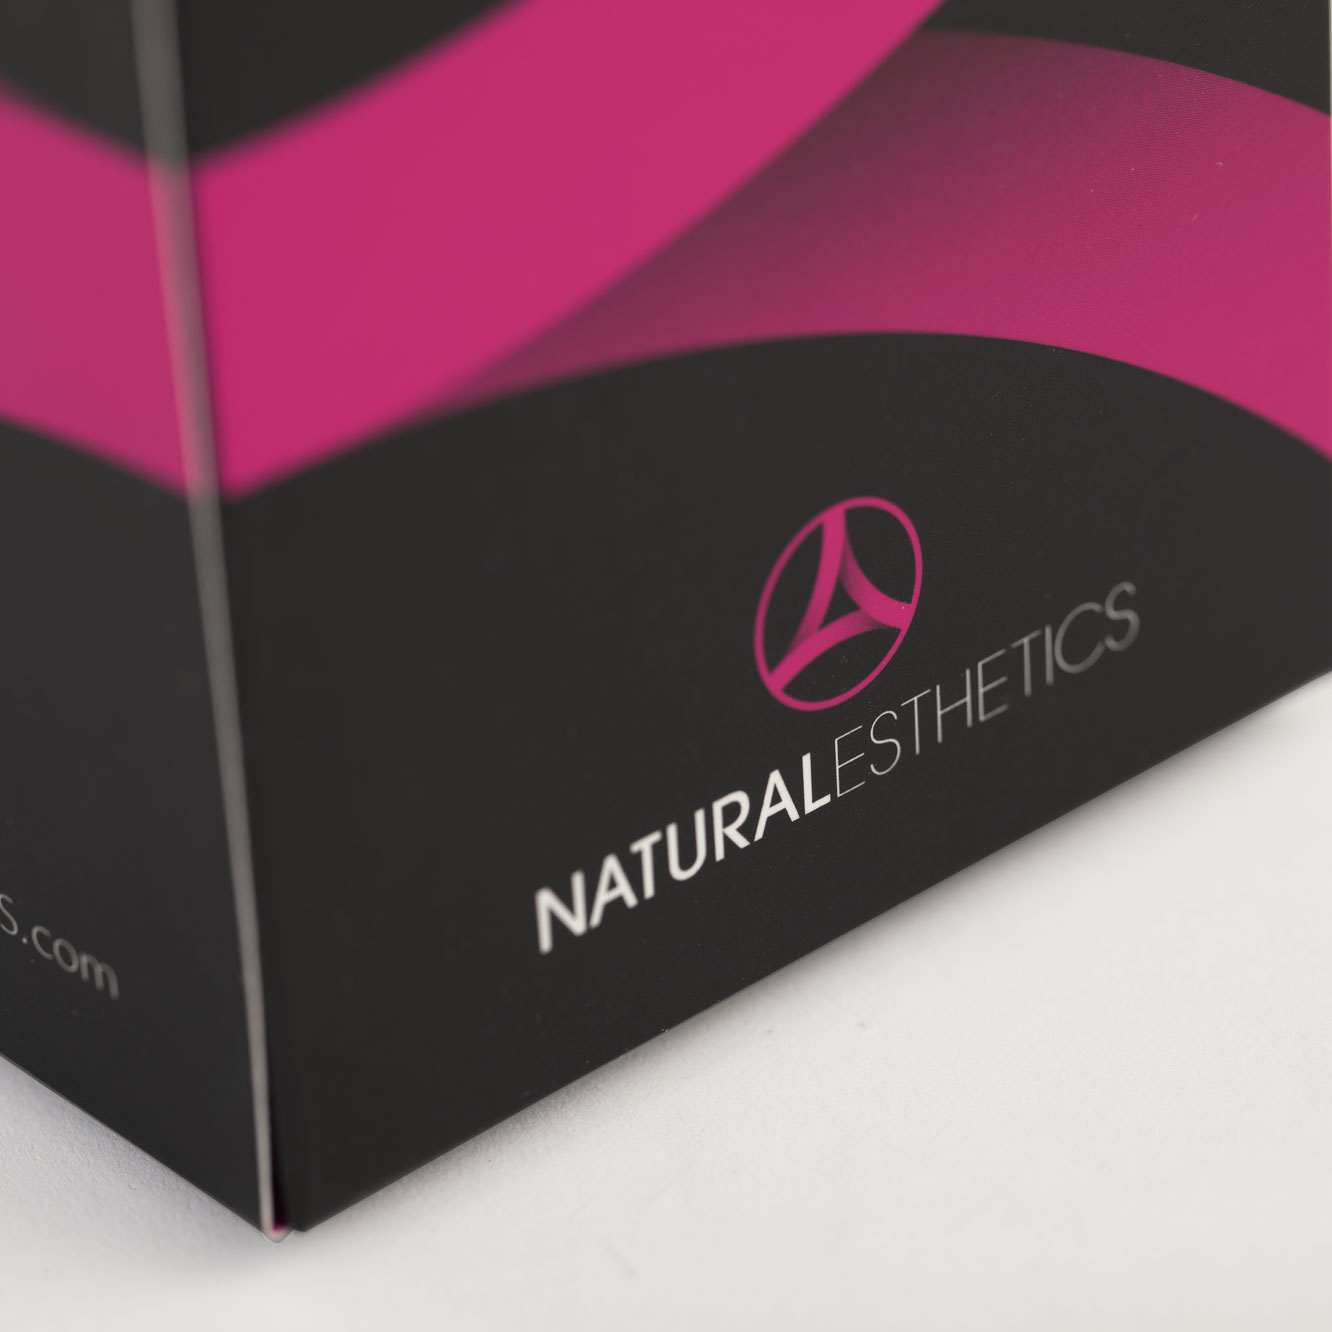 Natural Esthetics Corporate Design